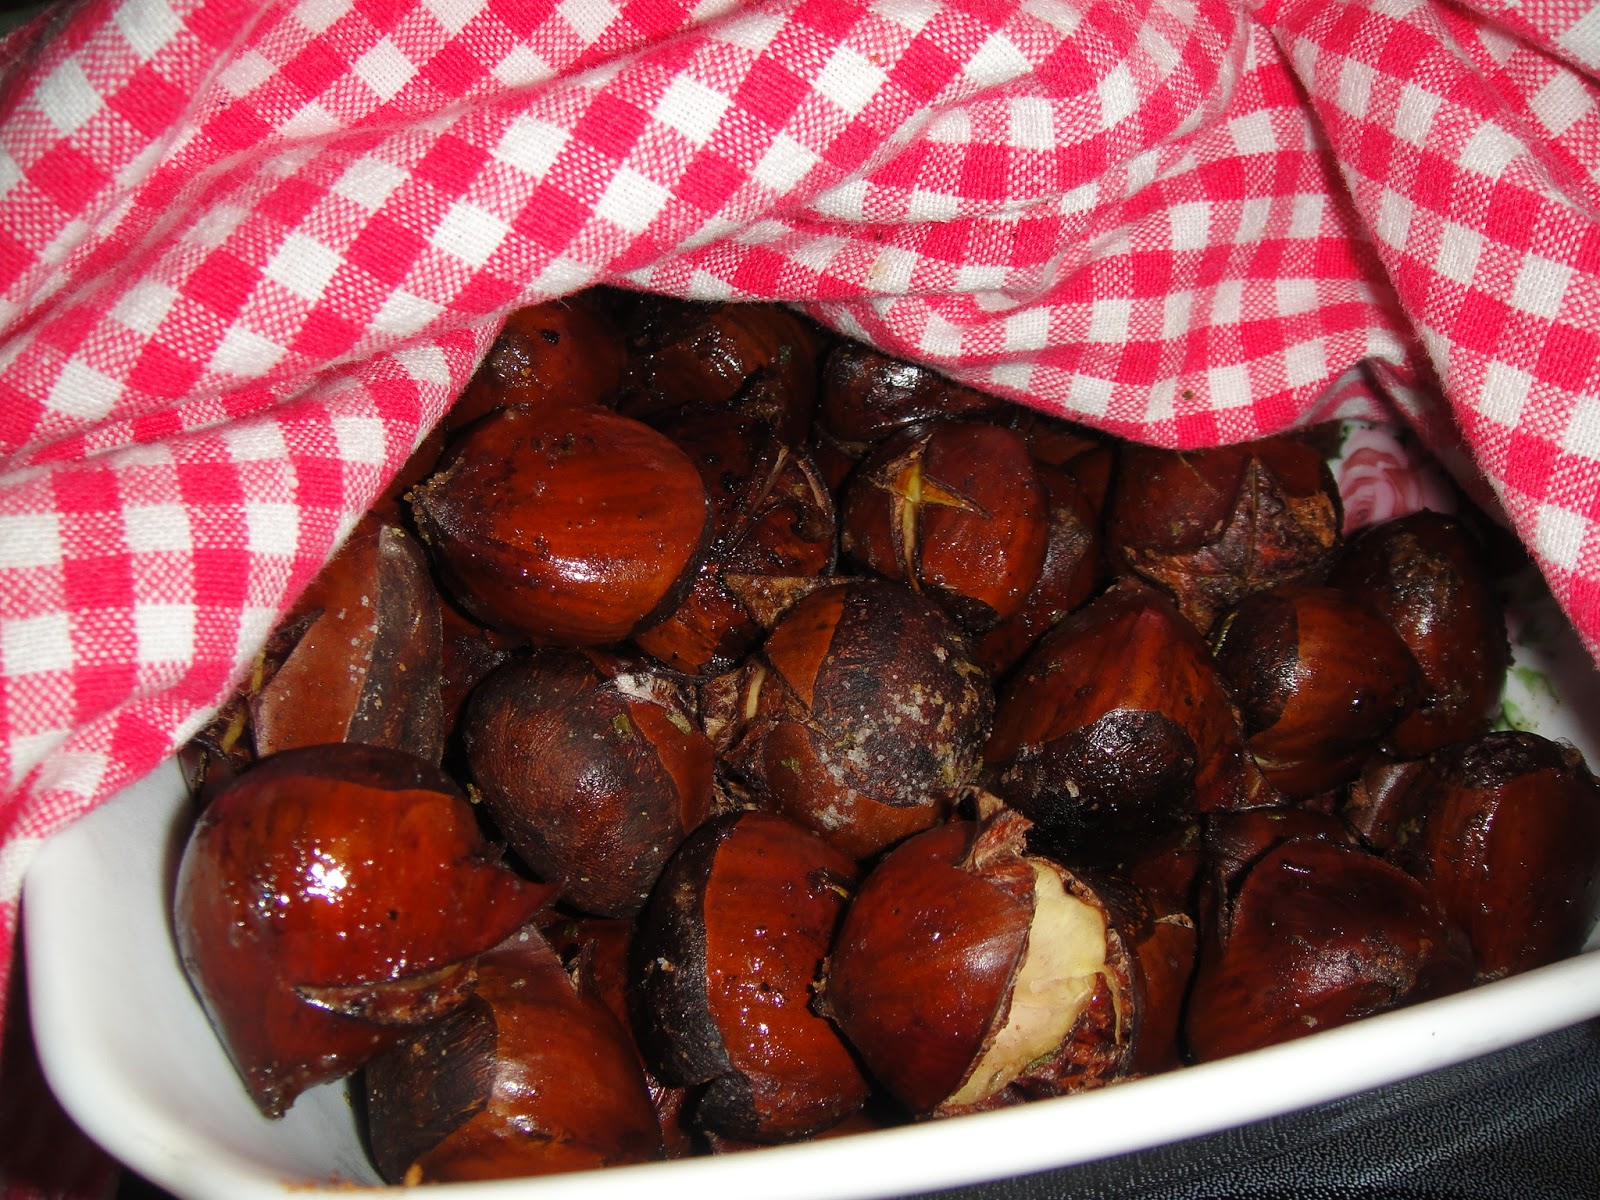 ... roasted chestnuts can we without roasted chestnuts it would be like